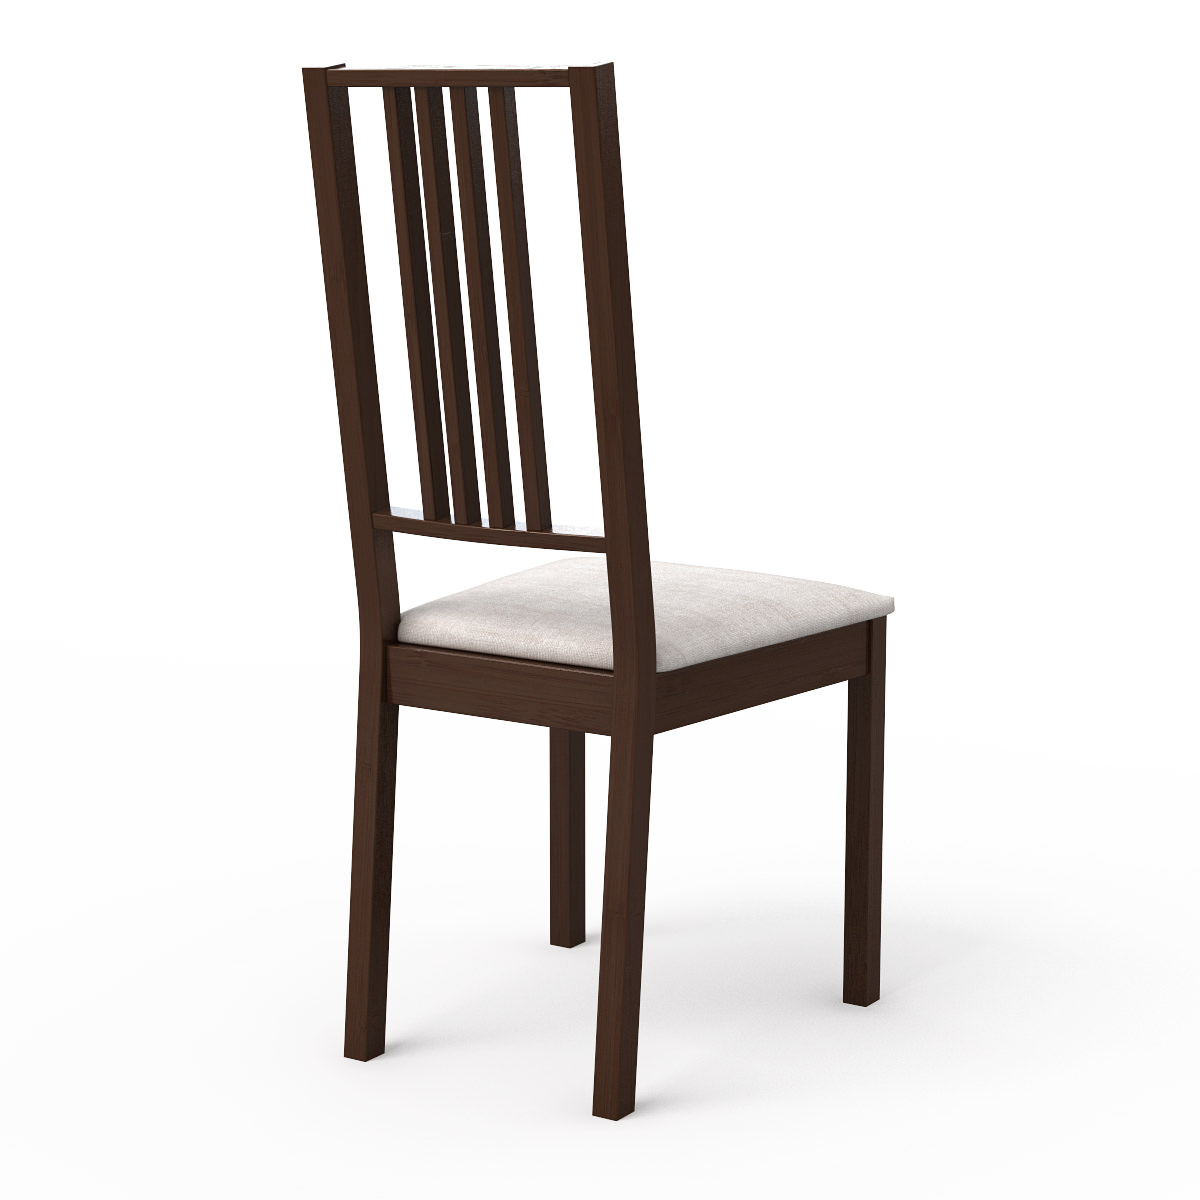 borje dark wood dining chair 3d model max obj 3ds fbx